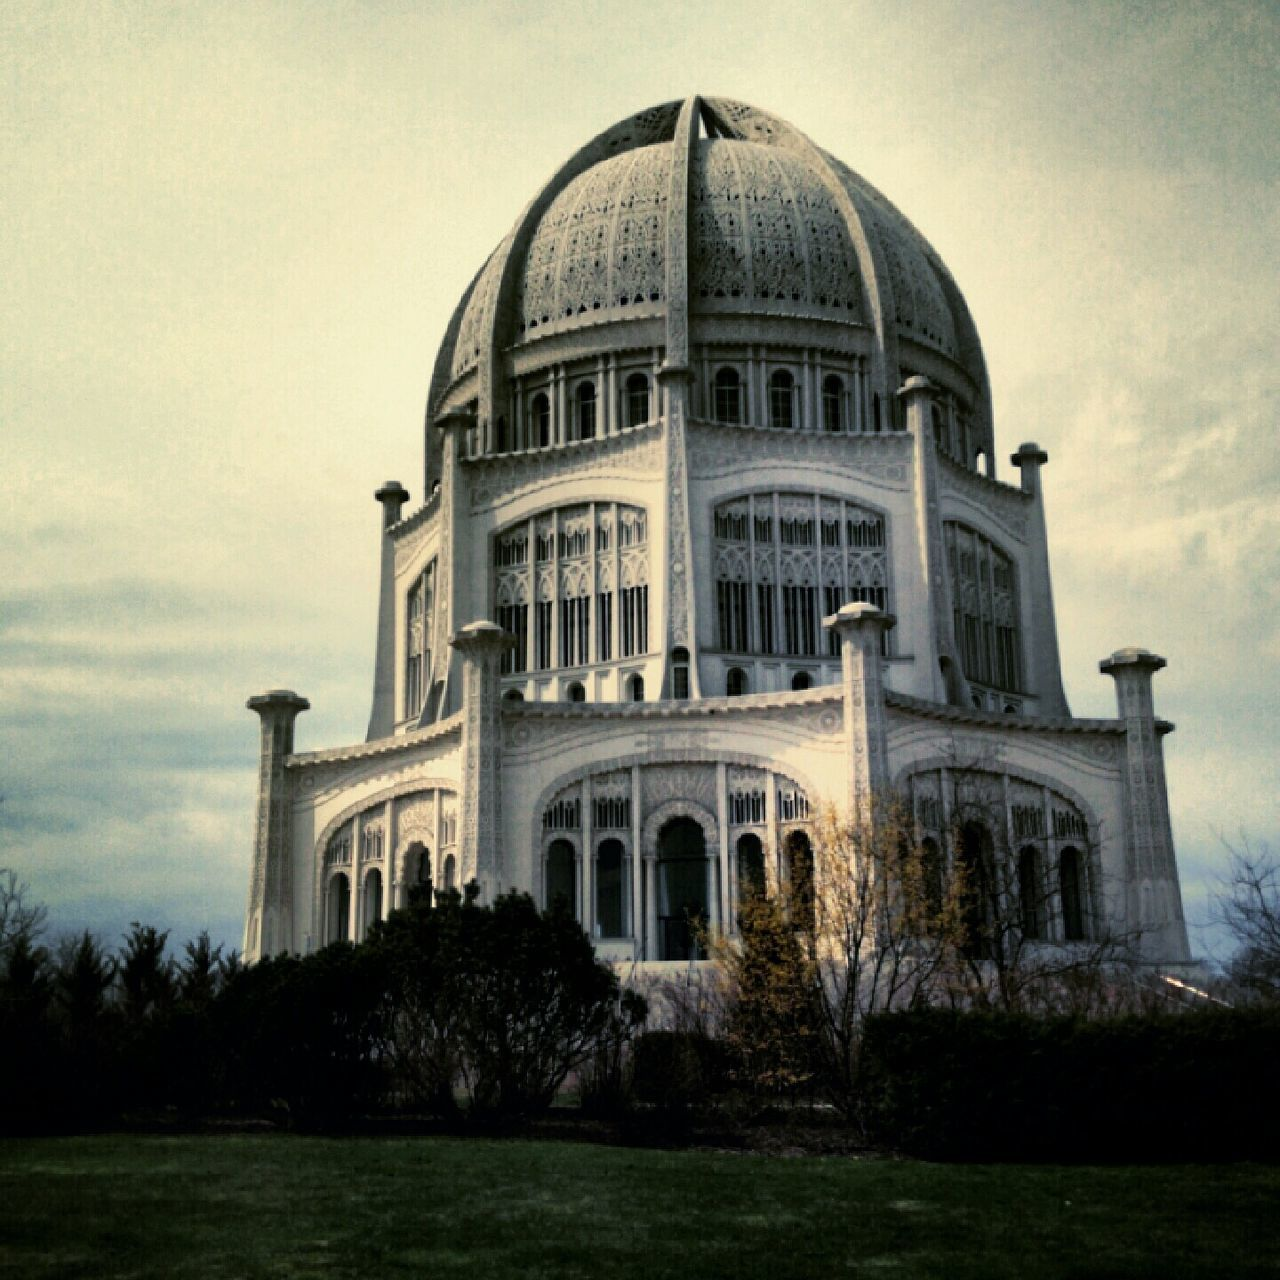 Bahai Temple Bahai Dome Architecture Religion Spirituality Famous Place Place Of Worship International Landmark Tourism Chicago Illinois Architecture Dome Built Structure Building Exterior Spirituality Religion Travel Destinations History Place Of Worship Famous Place Tree Memories Façade